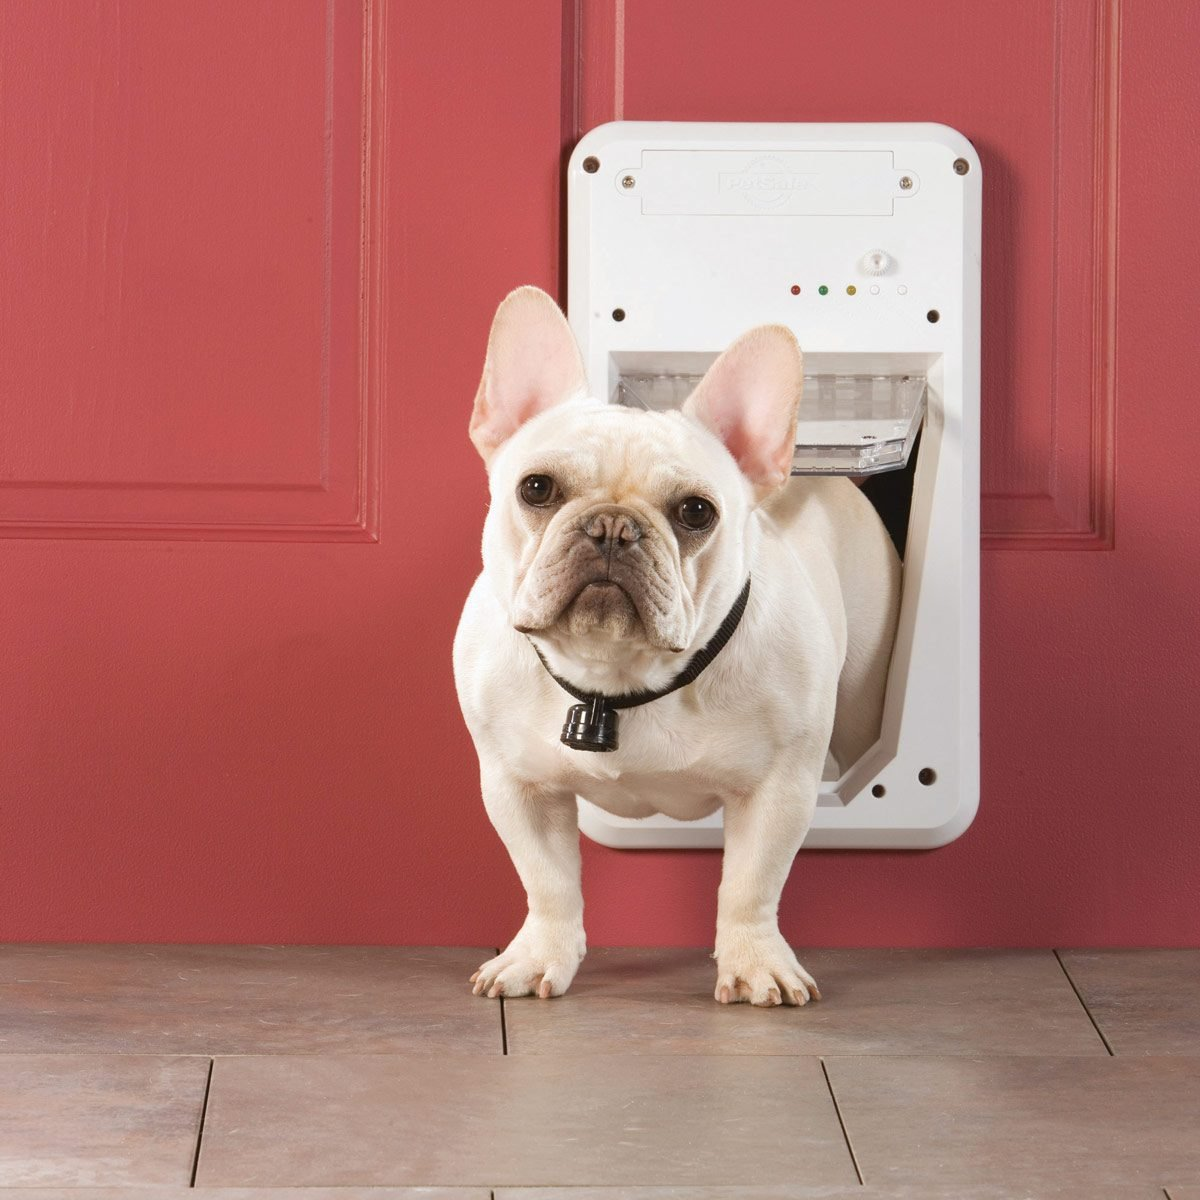 FH10JUN_509_56_M01 french bulldog in doggy door